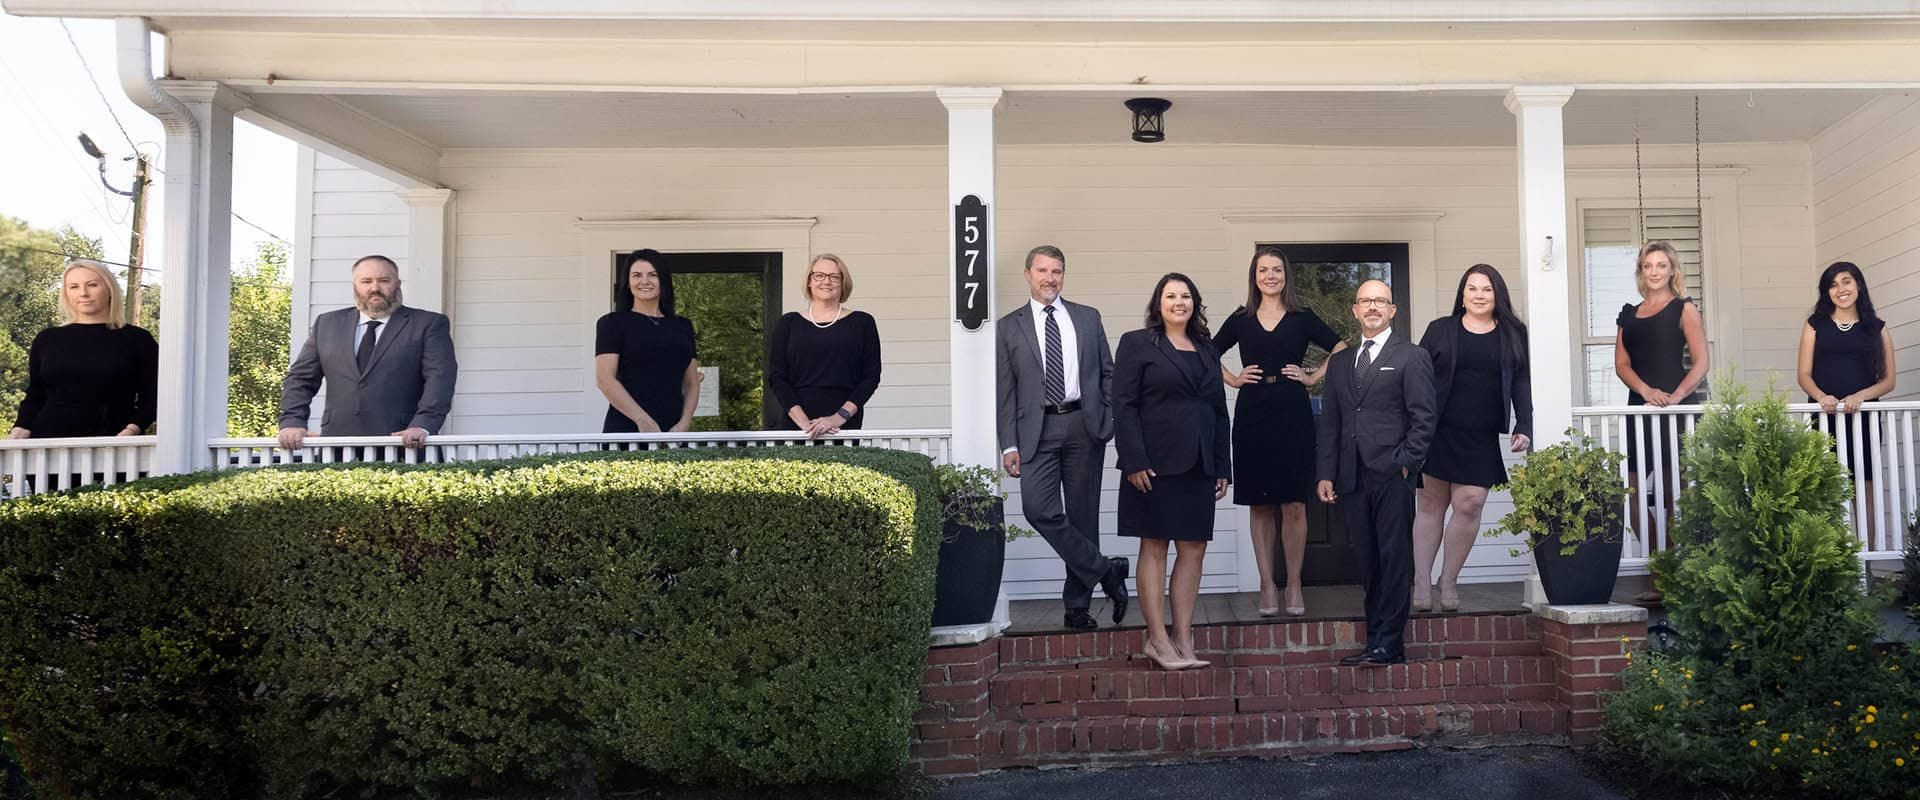 Criminal Defense, Family Law, and Divorce Lawyers in Cherokee County GA